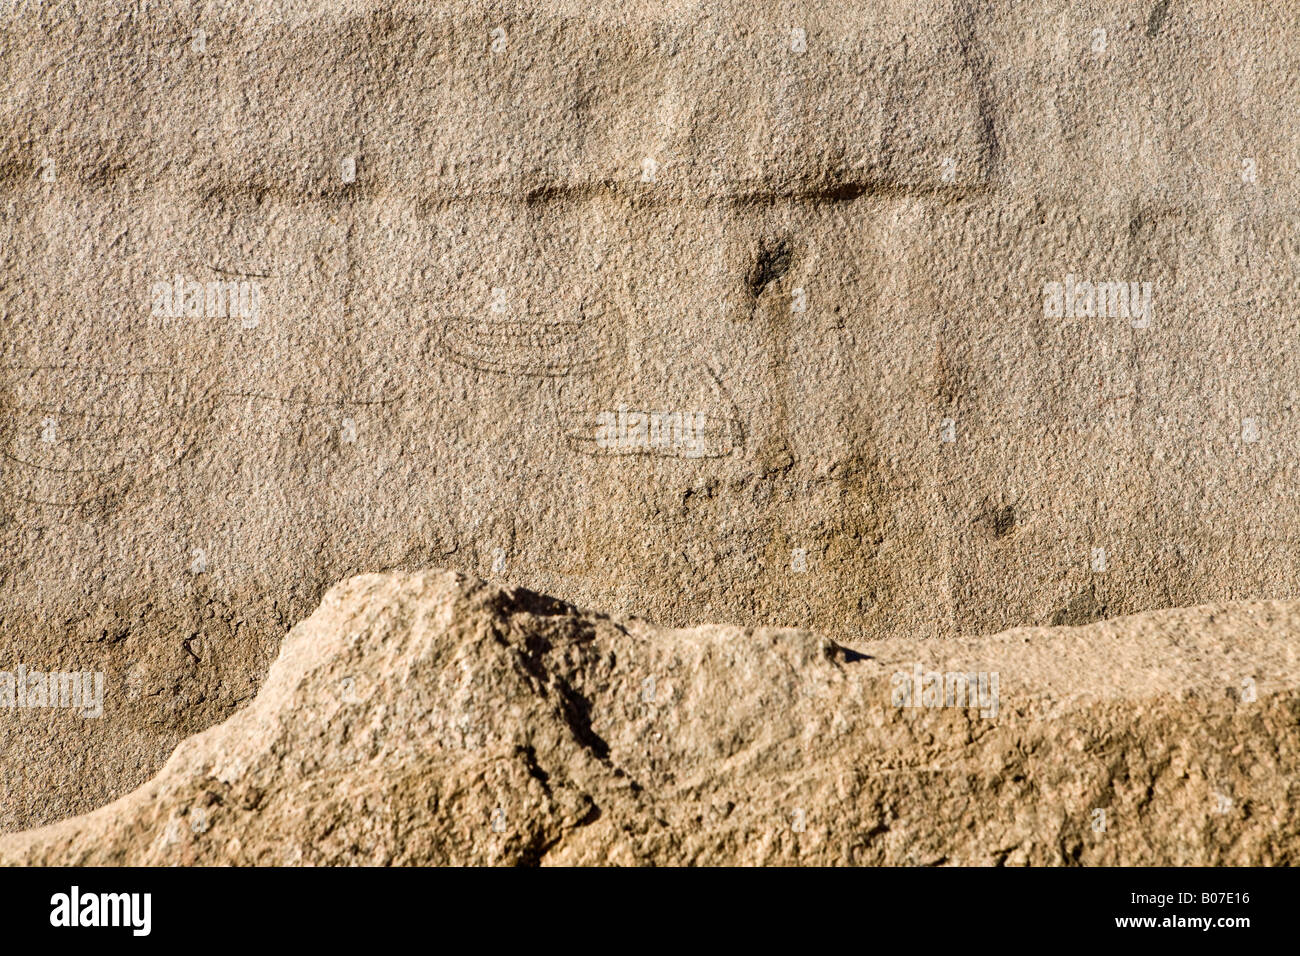 Pictographs on worked out walls at the site of the Unfinished Obelisk Quarry, Aswan, Egypt. - Stock Image